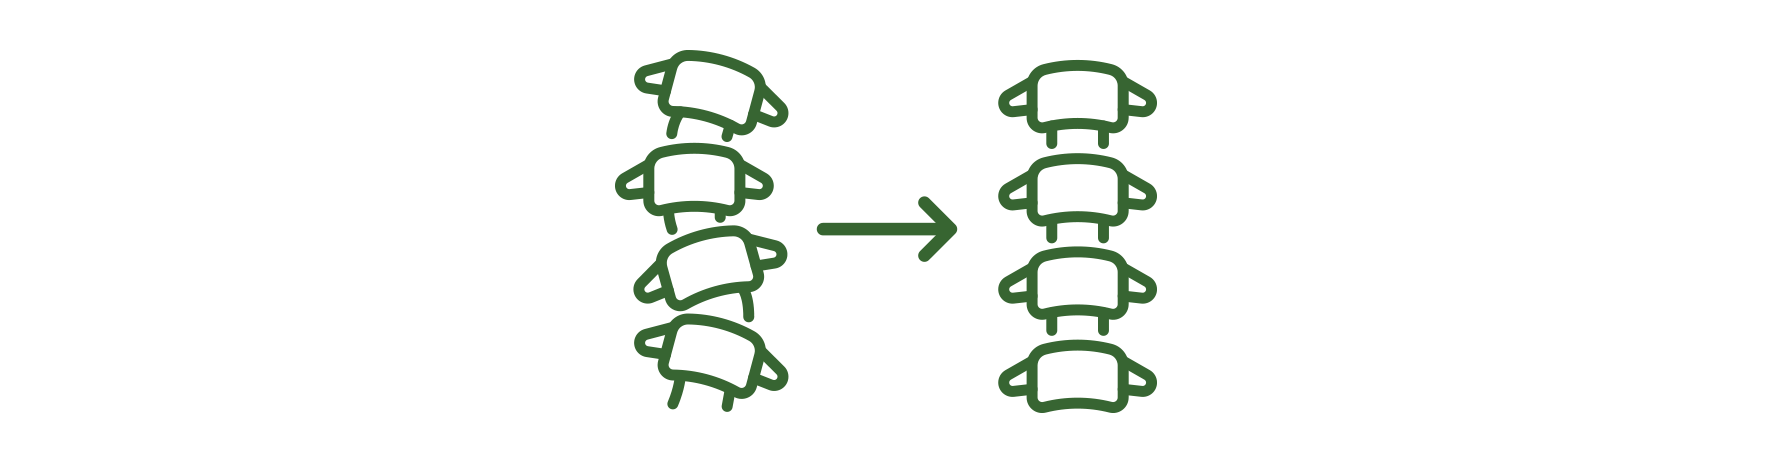 Align Spine Family Chirorpactic Bundaberg.png